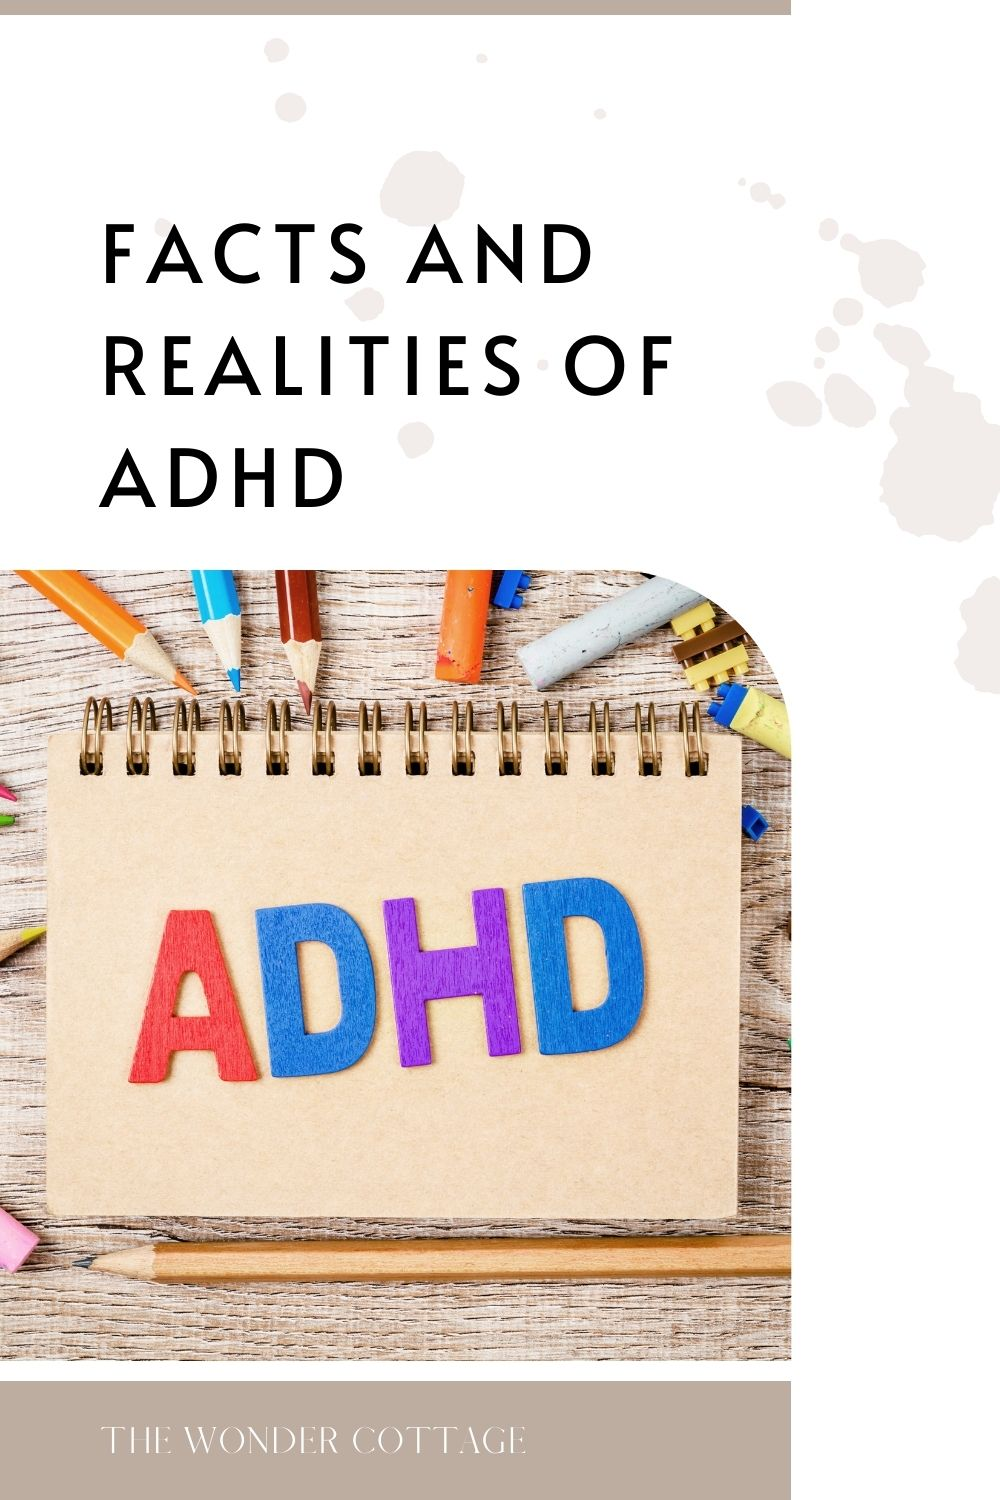 facts and realities of ADHD